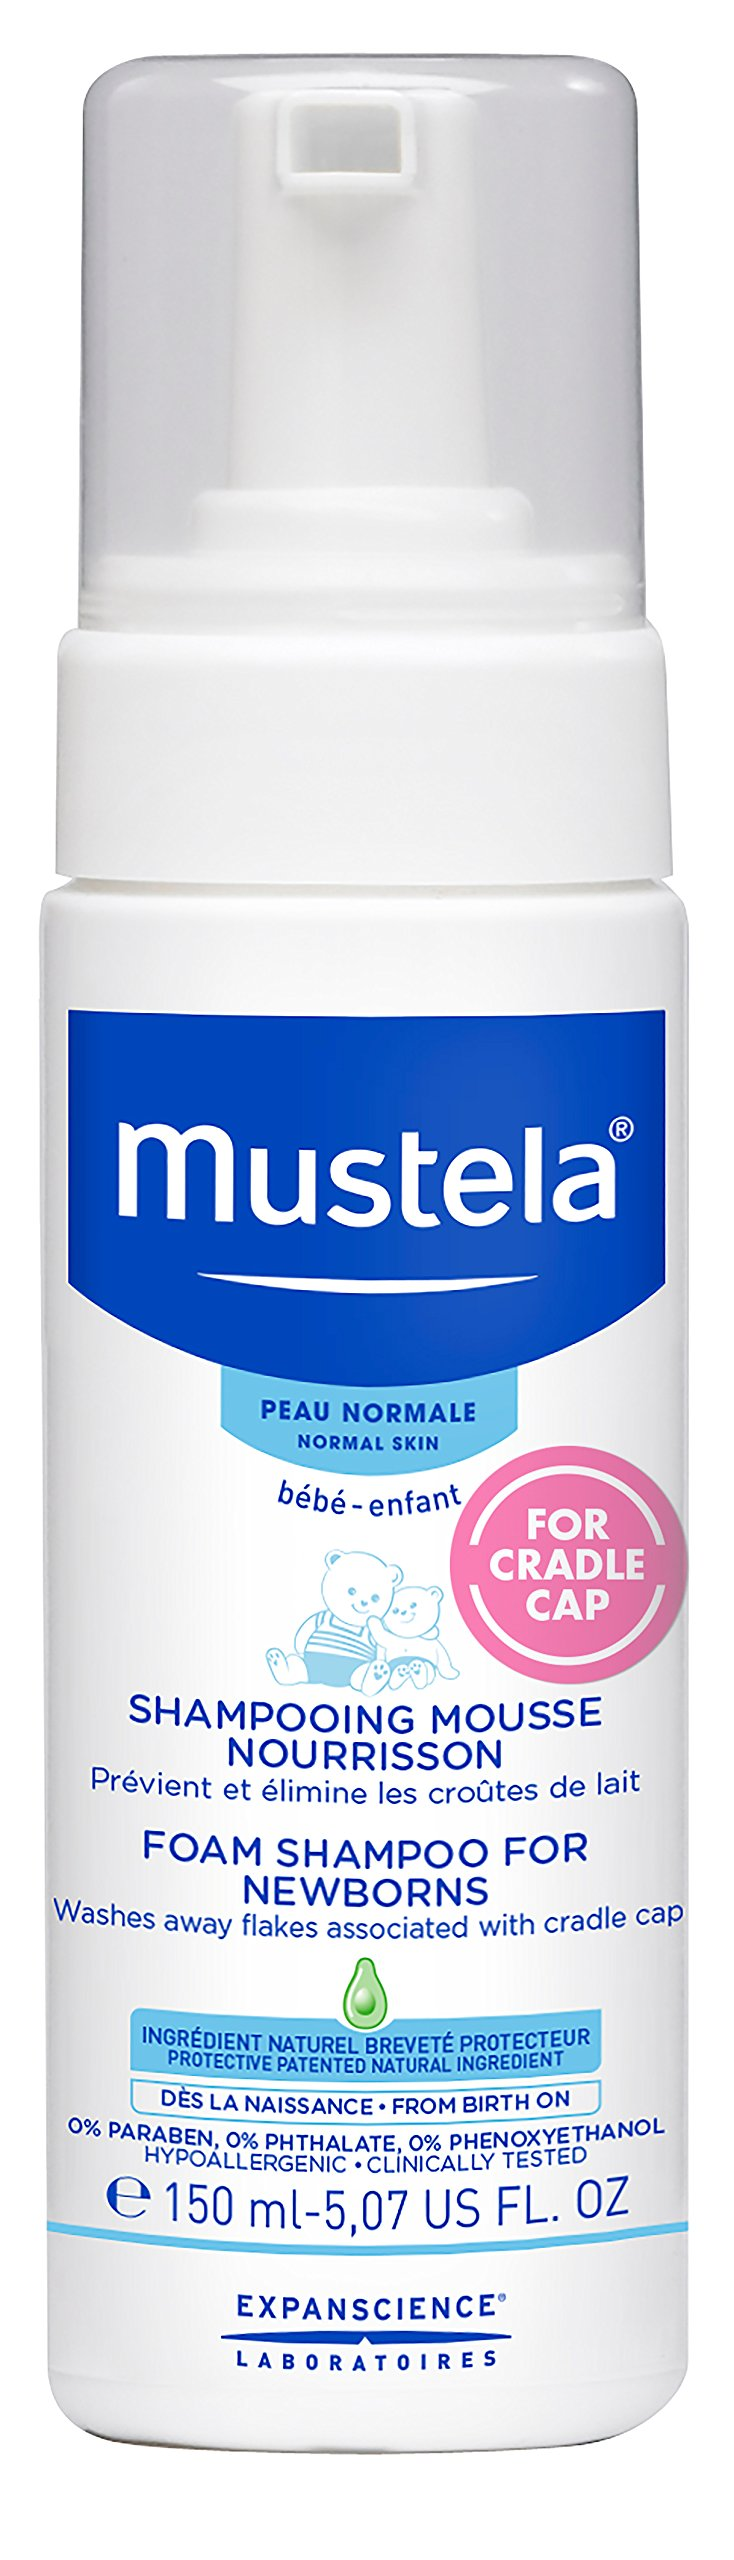 Mustela Foam Shampoo for Newborns, Baby Shampoo, Cradle Cap Treatment and Prevention, 5.07 fl.oz.